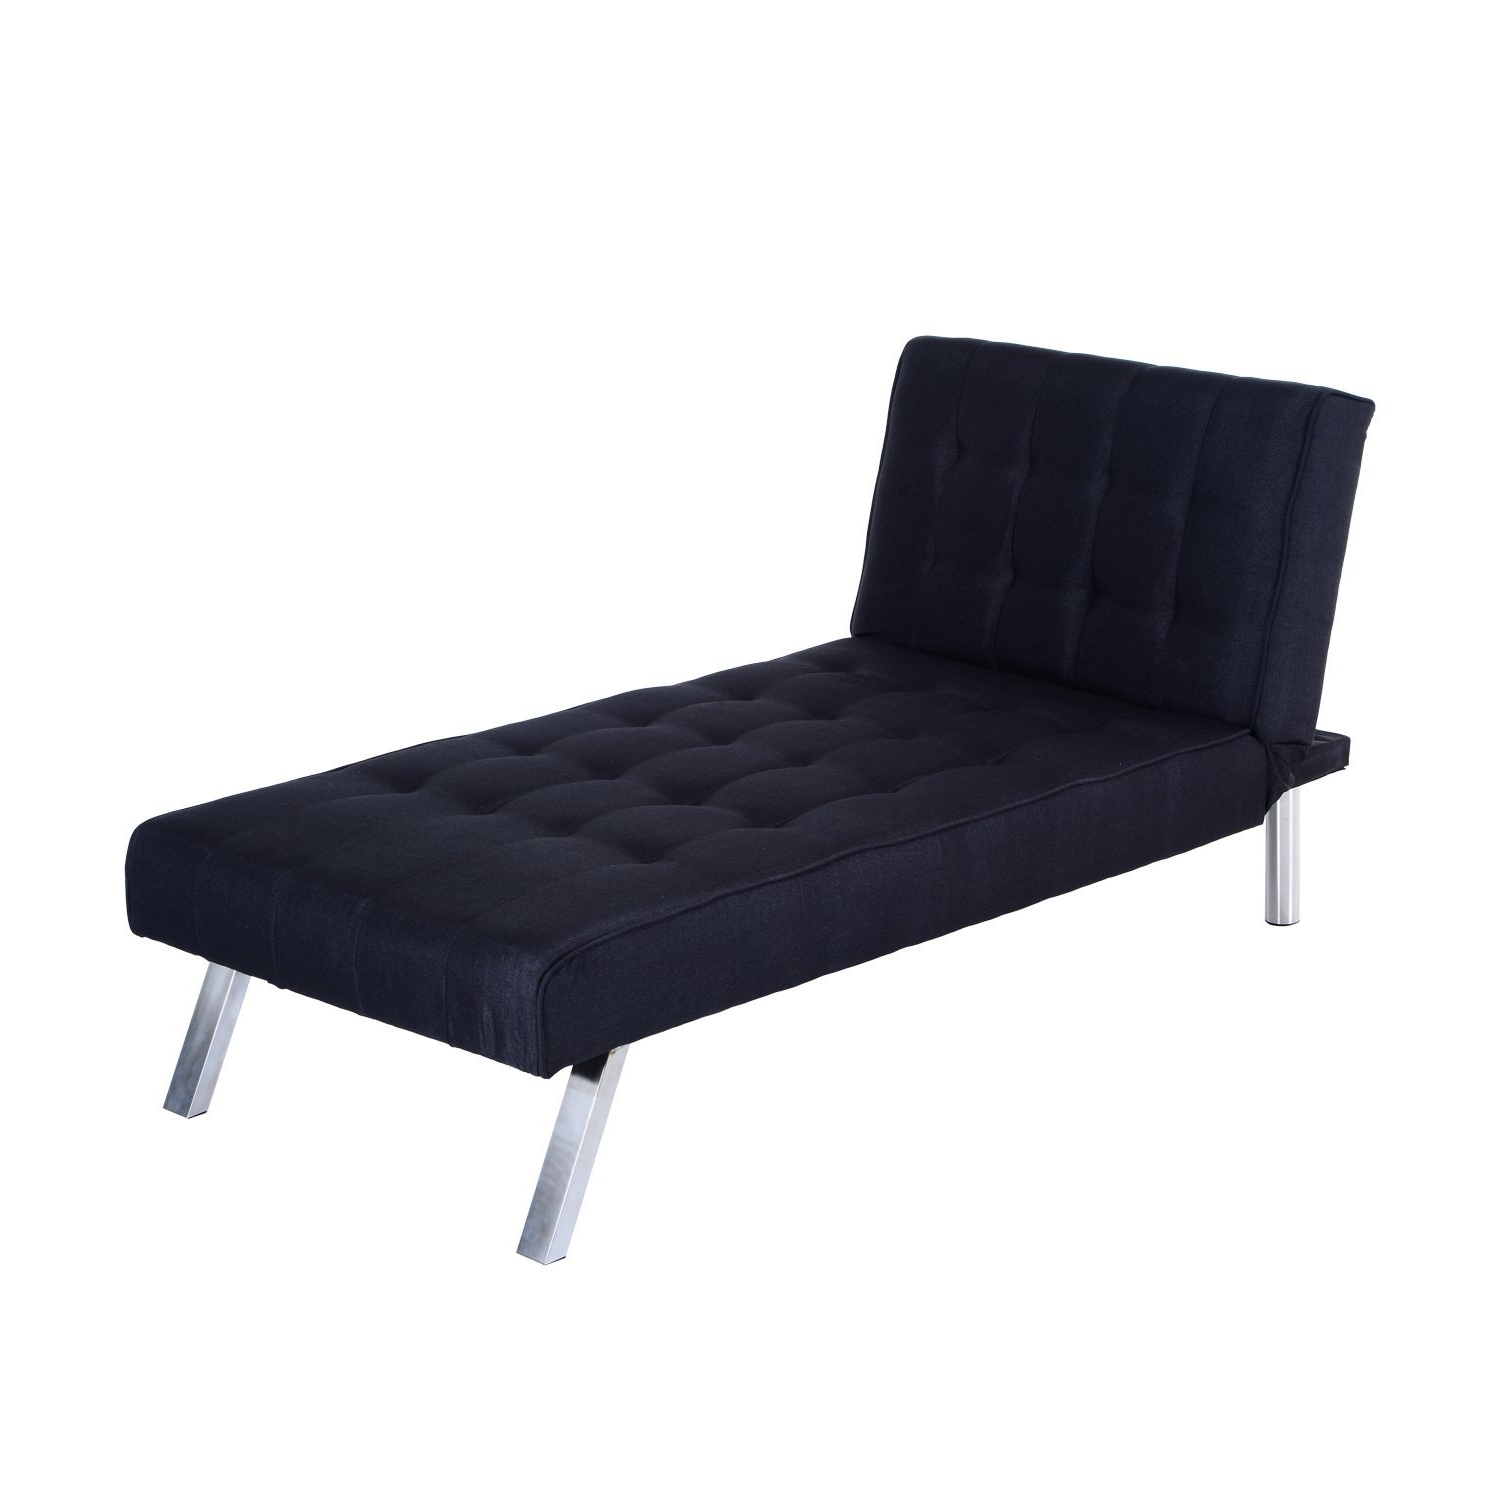 "Most Recently Released Amazon: Homcom 70"" Modern Reclining Chaise Lounge Sleeper Sofa With Regard To Reclining Chaise Lounges (View 15 of 15)"